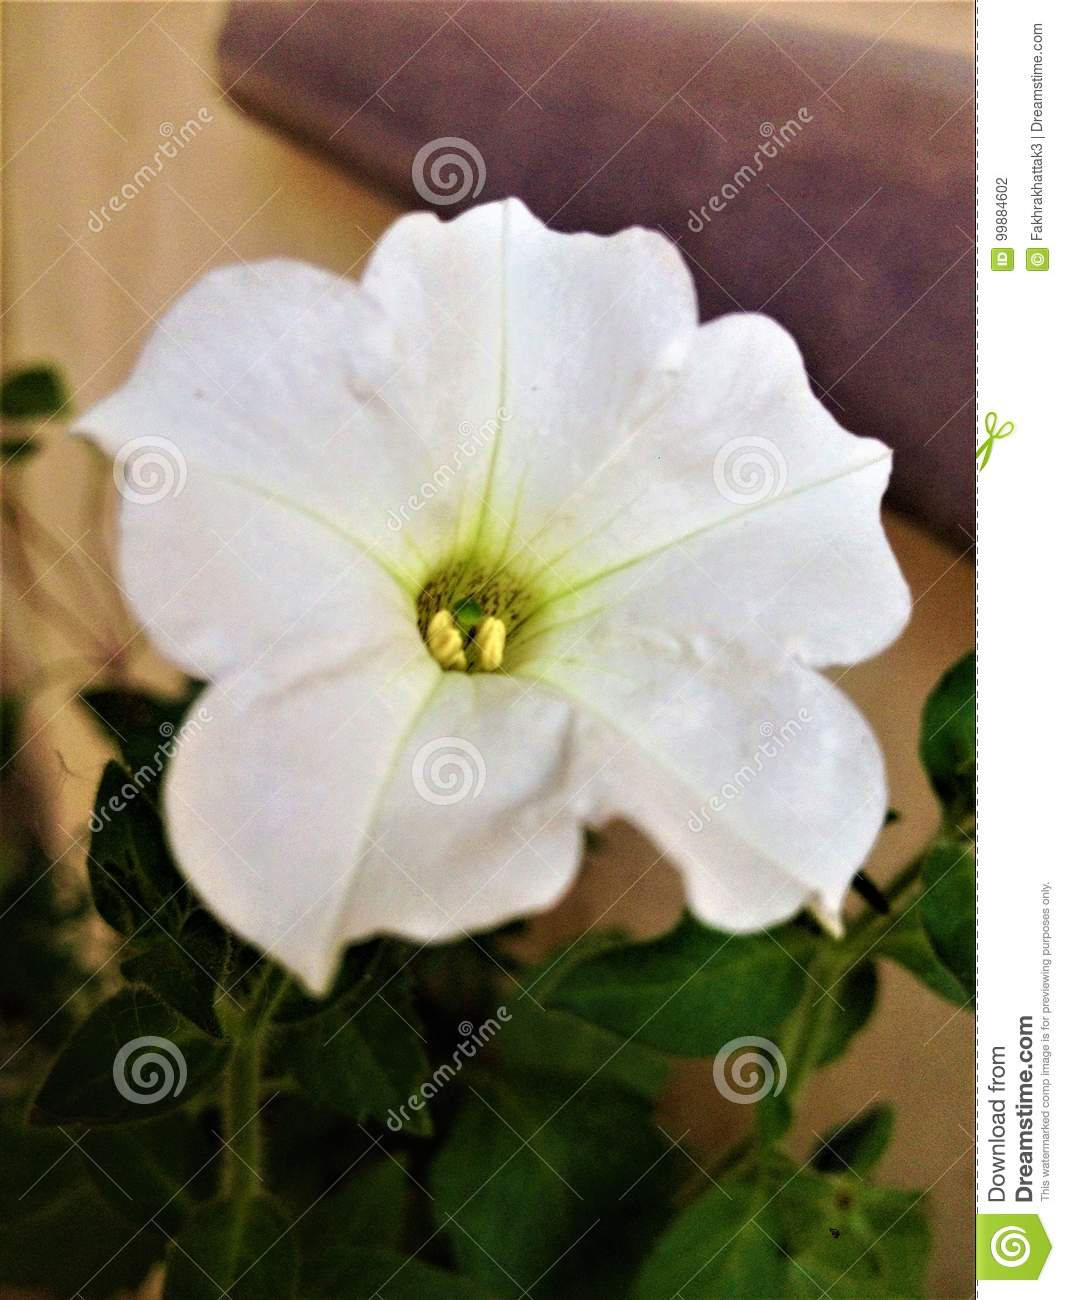 Petunia white flower stock photo image of seeds beautiful 99884602 its white petunia flowerits half shade plantavailable in both annuals and parenialsboth give seeds toos best for baskets or hanging purposes izmirmasajfo